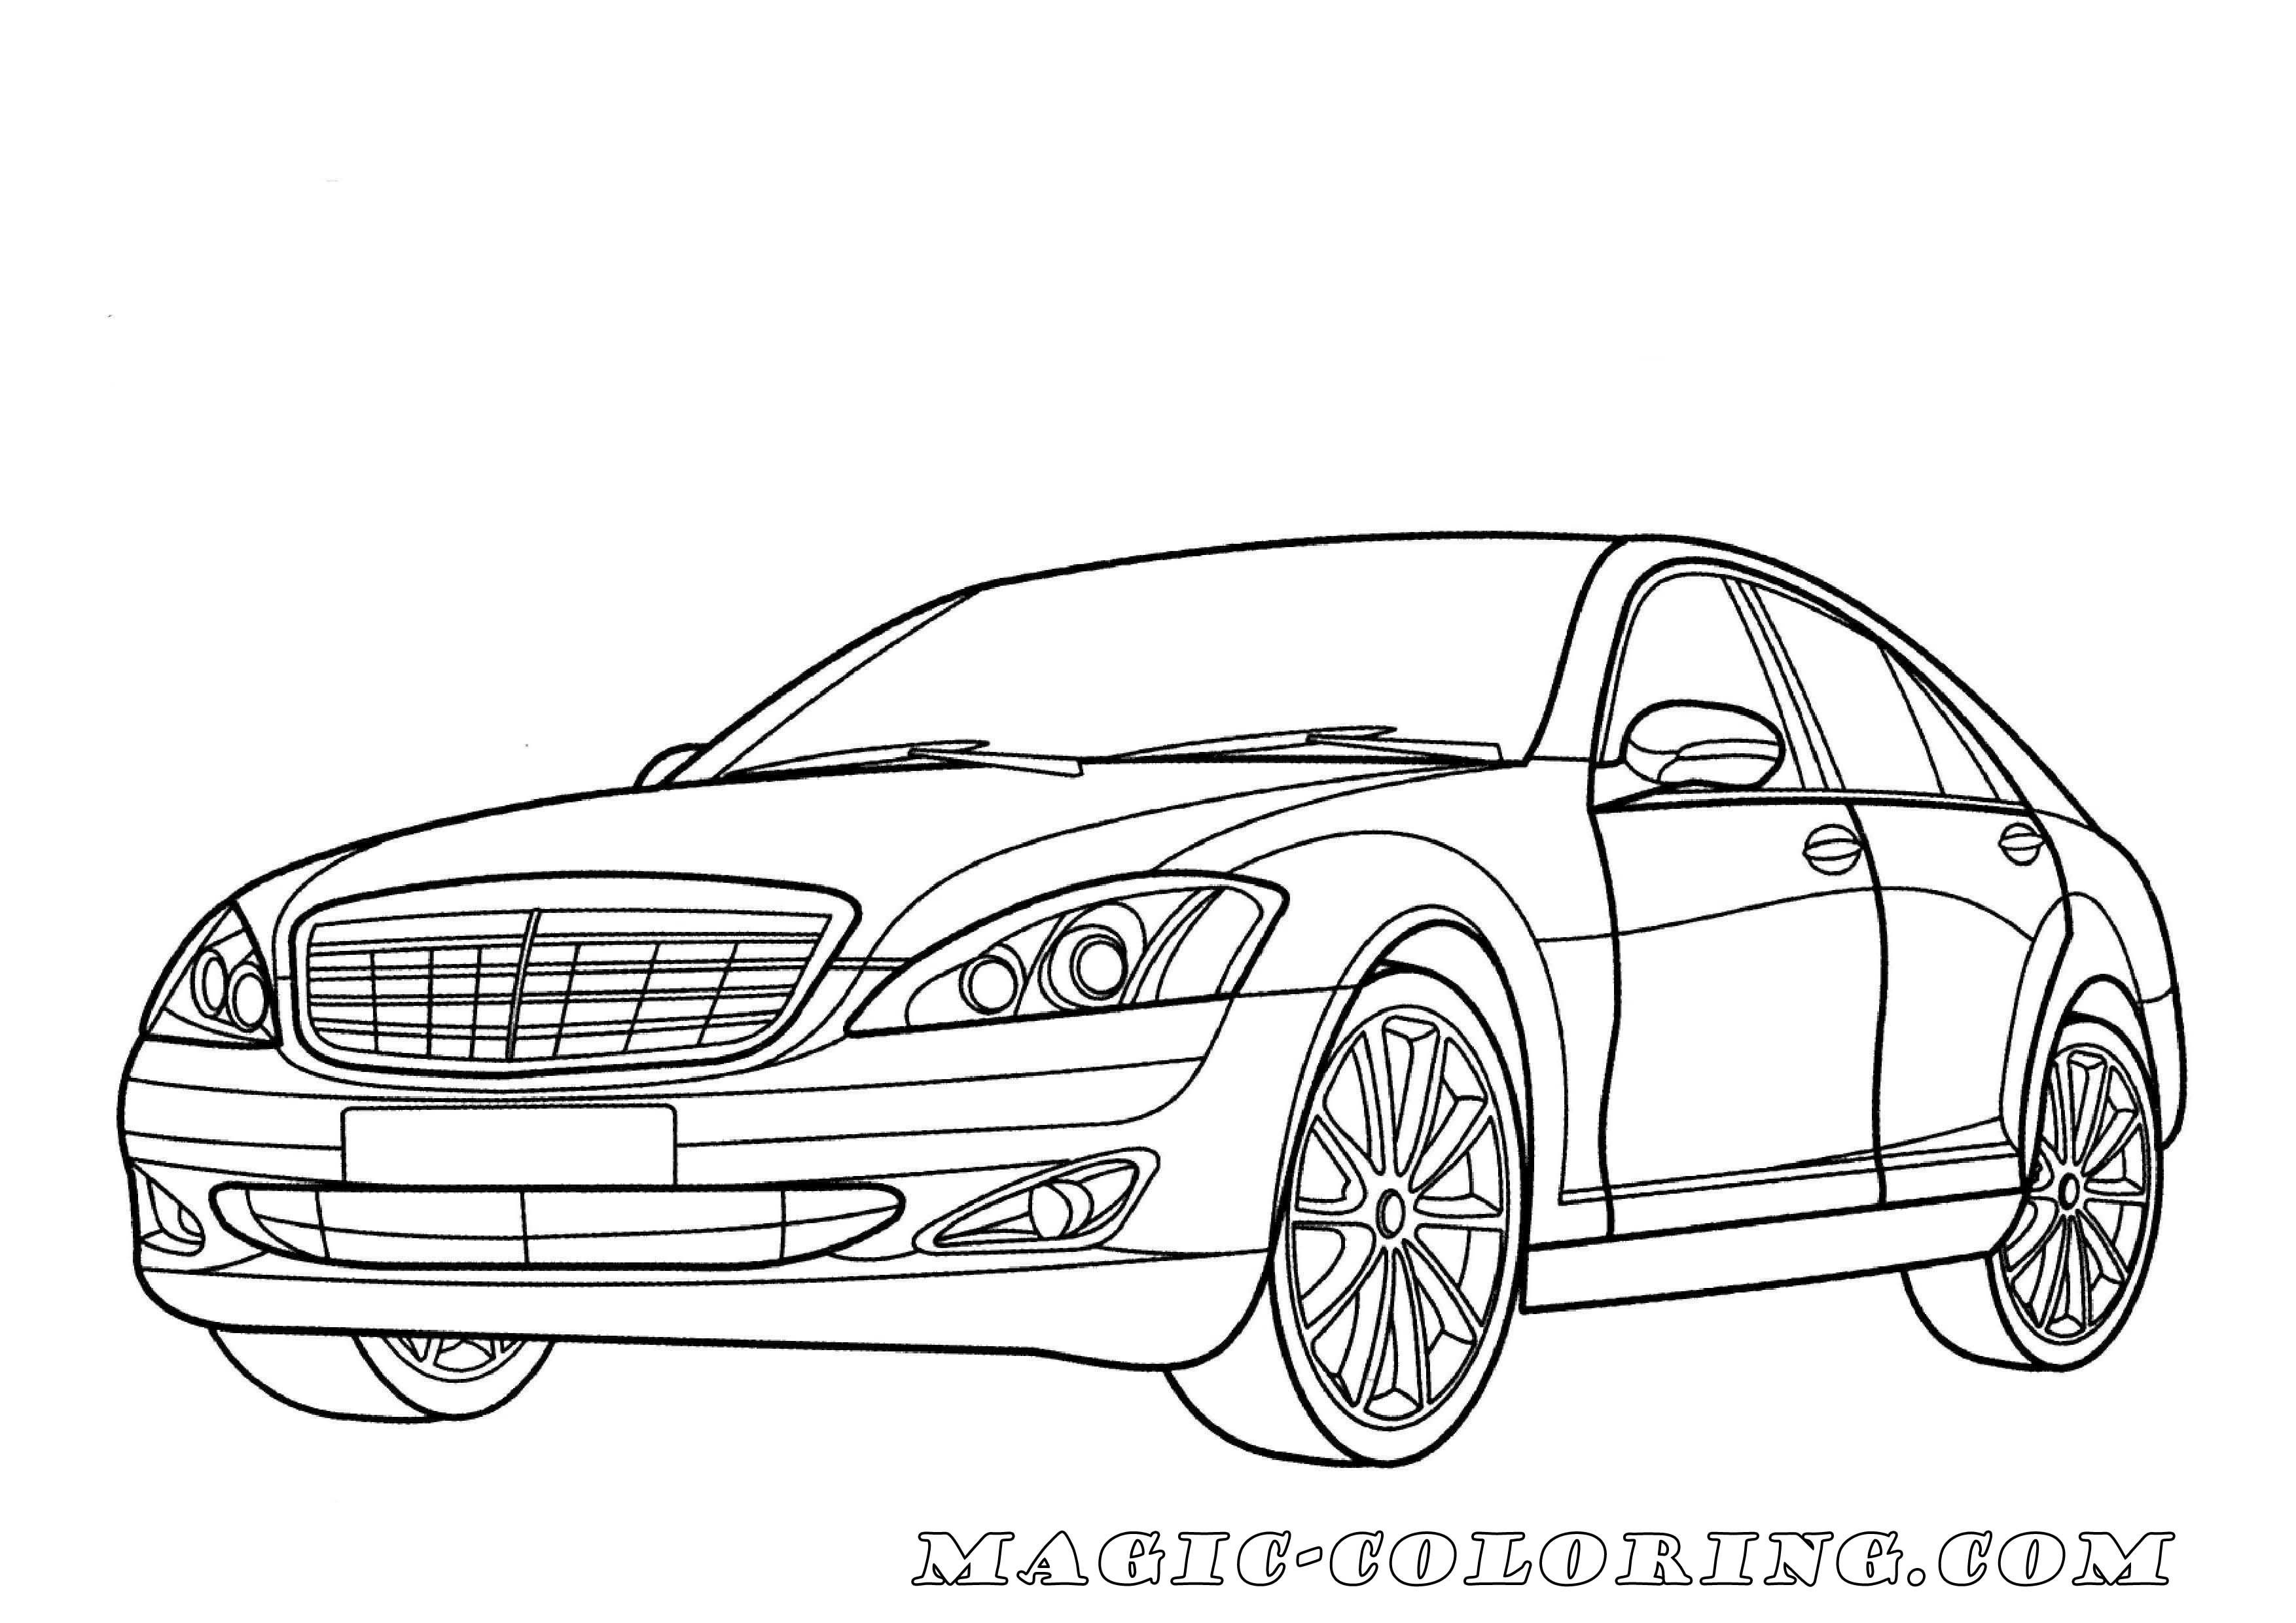 Mercedes Benz S Class Coloring Page Sports Coloring Pages Coloring Pages Benz S Class